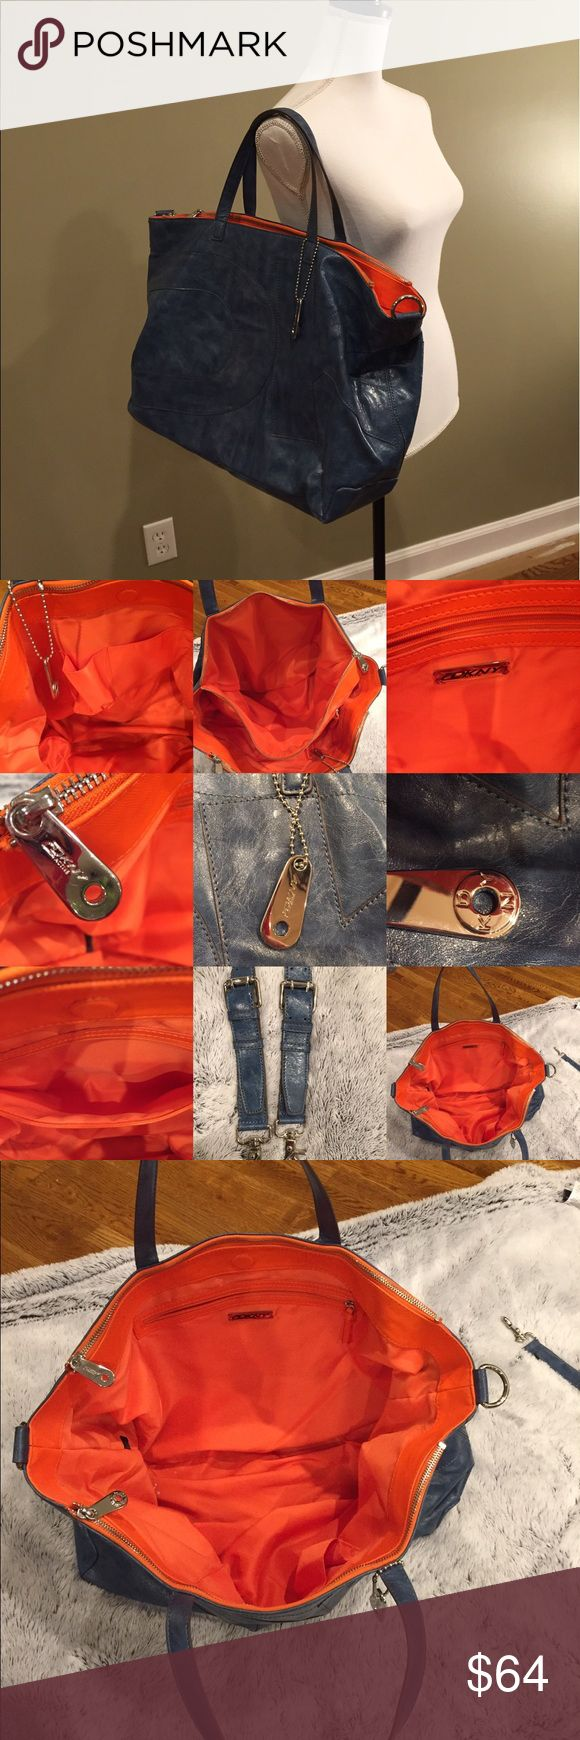 "Donna Karen blue /orange shoulder bag Beautiful blue leather bag is complimented with electric orange lining. 2 interior side zippers run the length of the purse sides with separate compartments. Interior zip pocket and 2 interior side pouch pockets. Magnetic closure. Additional body strap included. 6.5"" width base, 19"" length,13.5"" depth,47.5"" shoulder strap,16"" handles Donna Karen Bags Shoulder Bags"